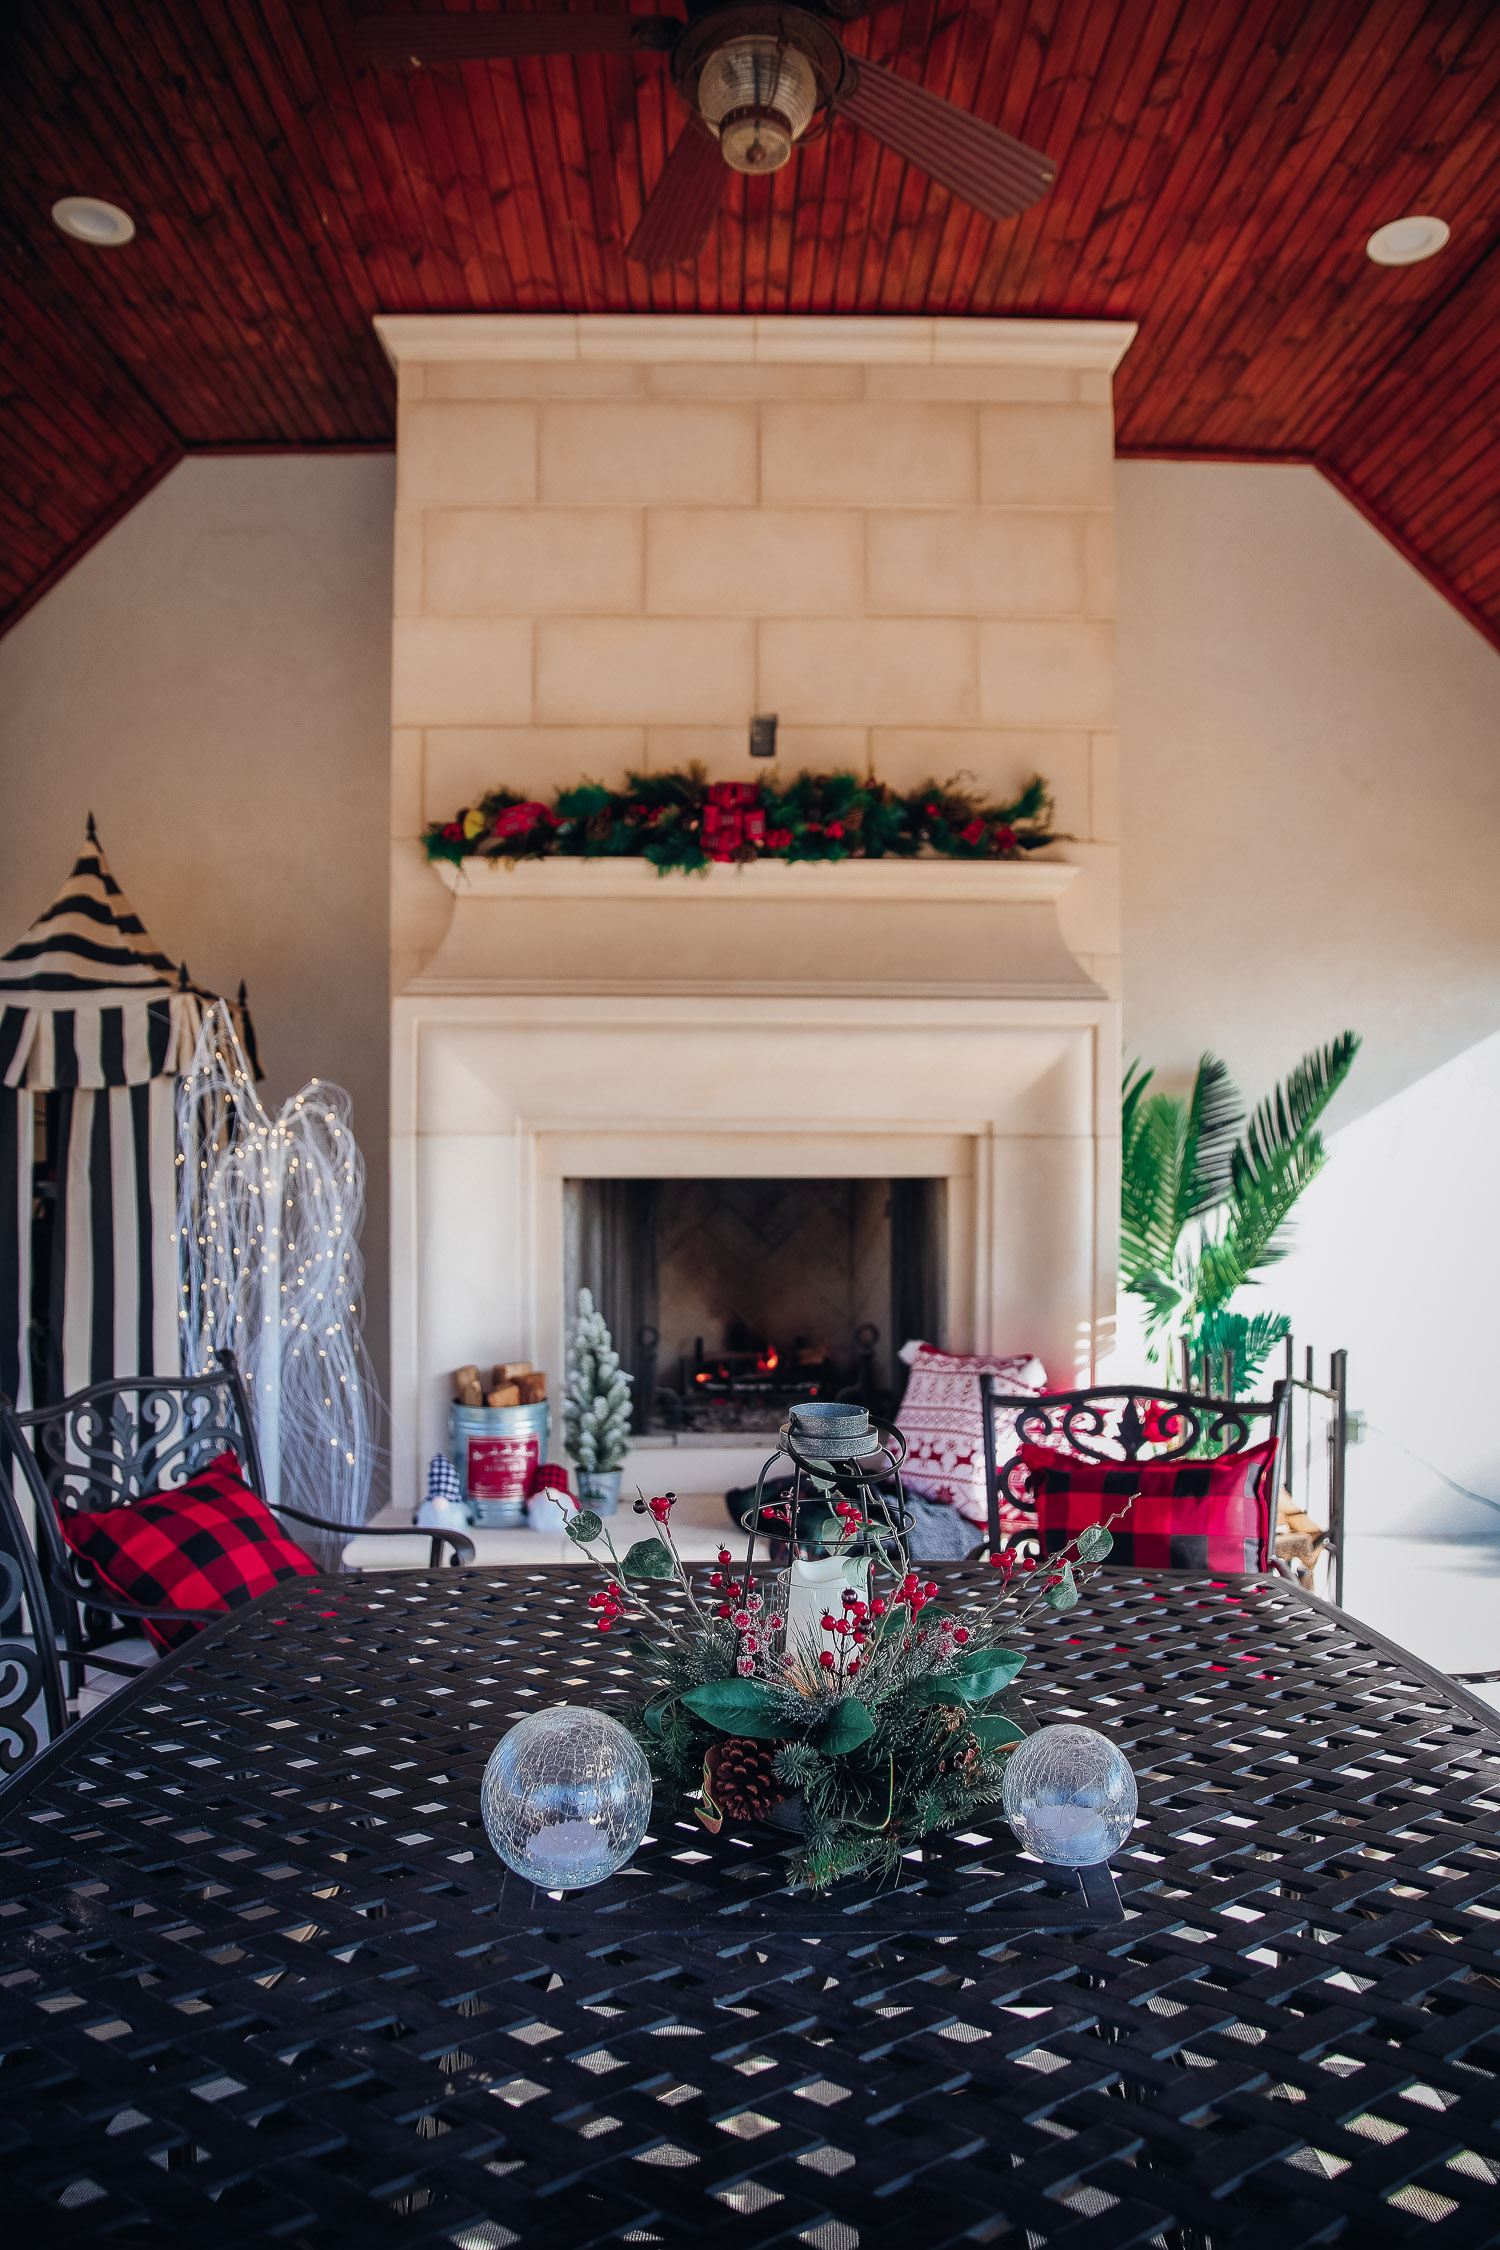 backyard decor christmas, outdoor pool christmas decor, walmart pool ornament, emily gemma backyard |Christmas Pool Decorations by popular US life and style blog, The Sweetest Thing: image of a pool house decorated with Christmas garland, black and red buffalo check throw pillows, Christmas tree decor, and candles.